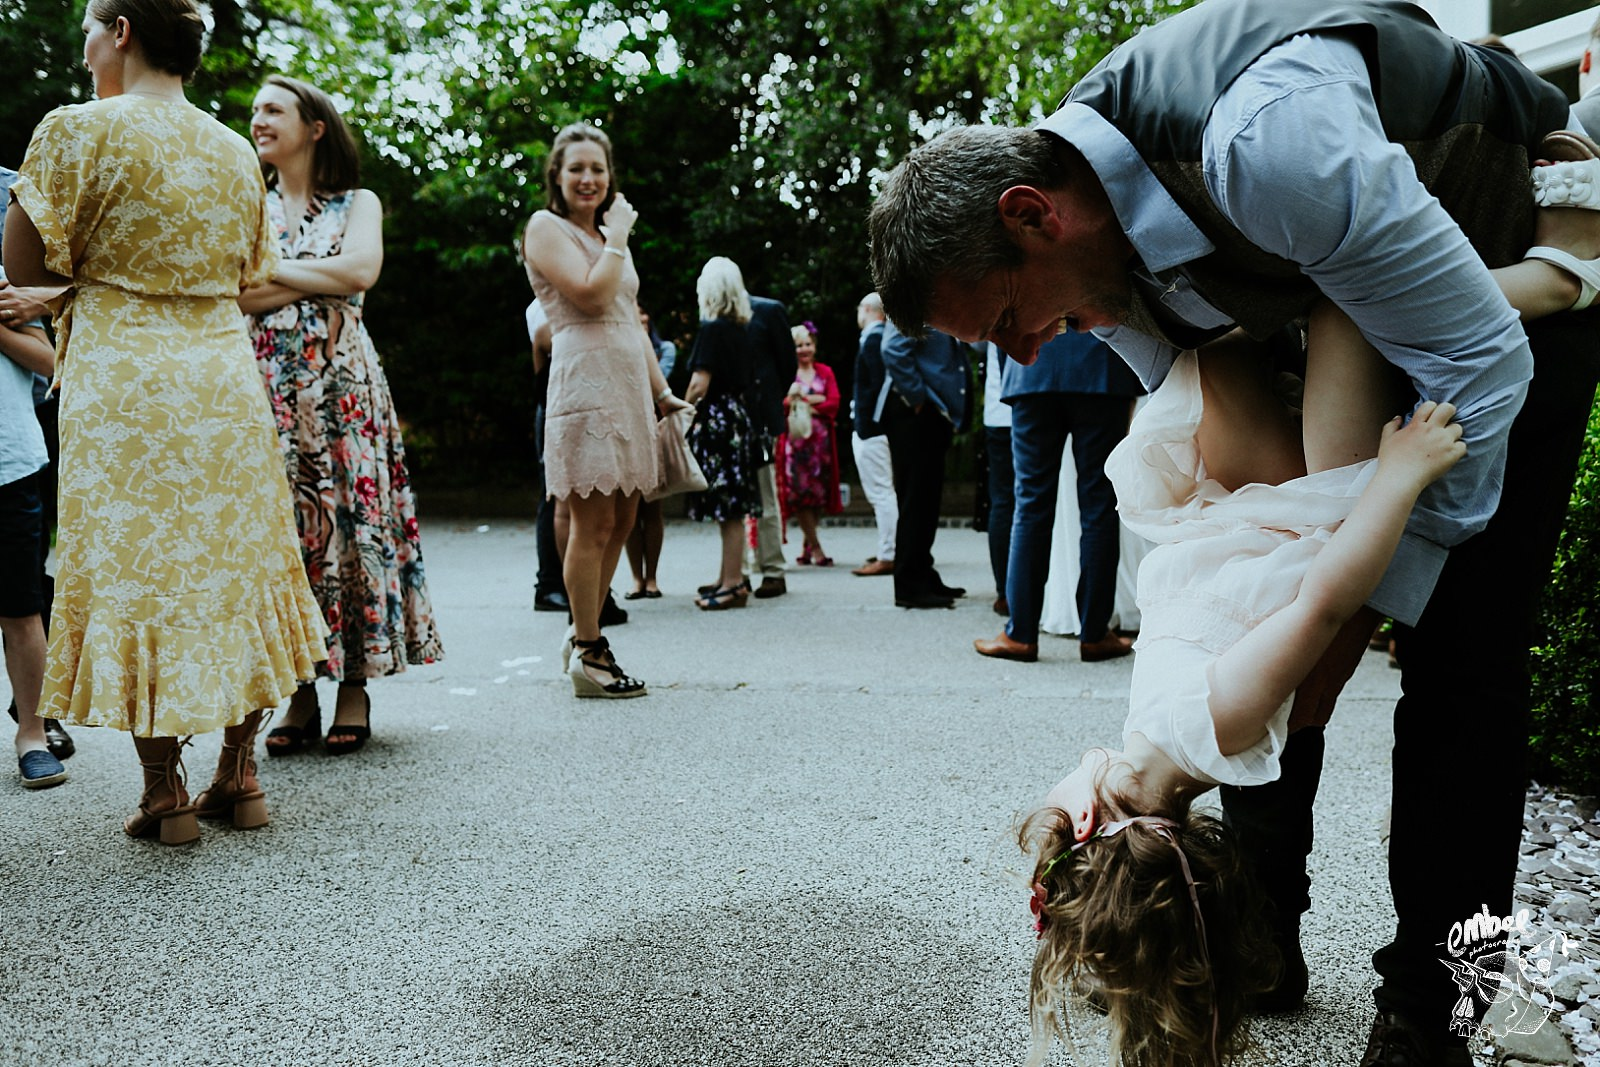 dad playing wiht kid at wedding